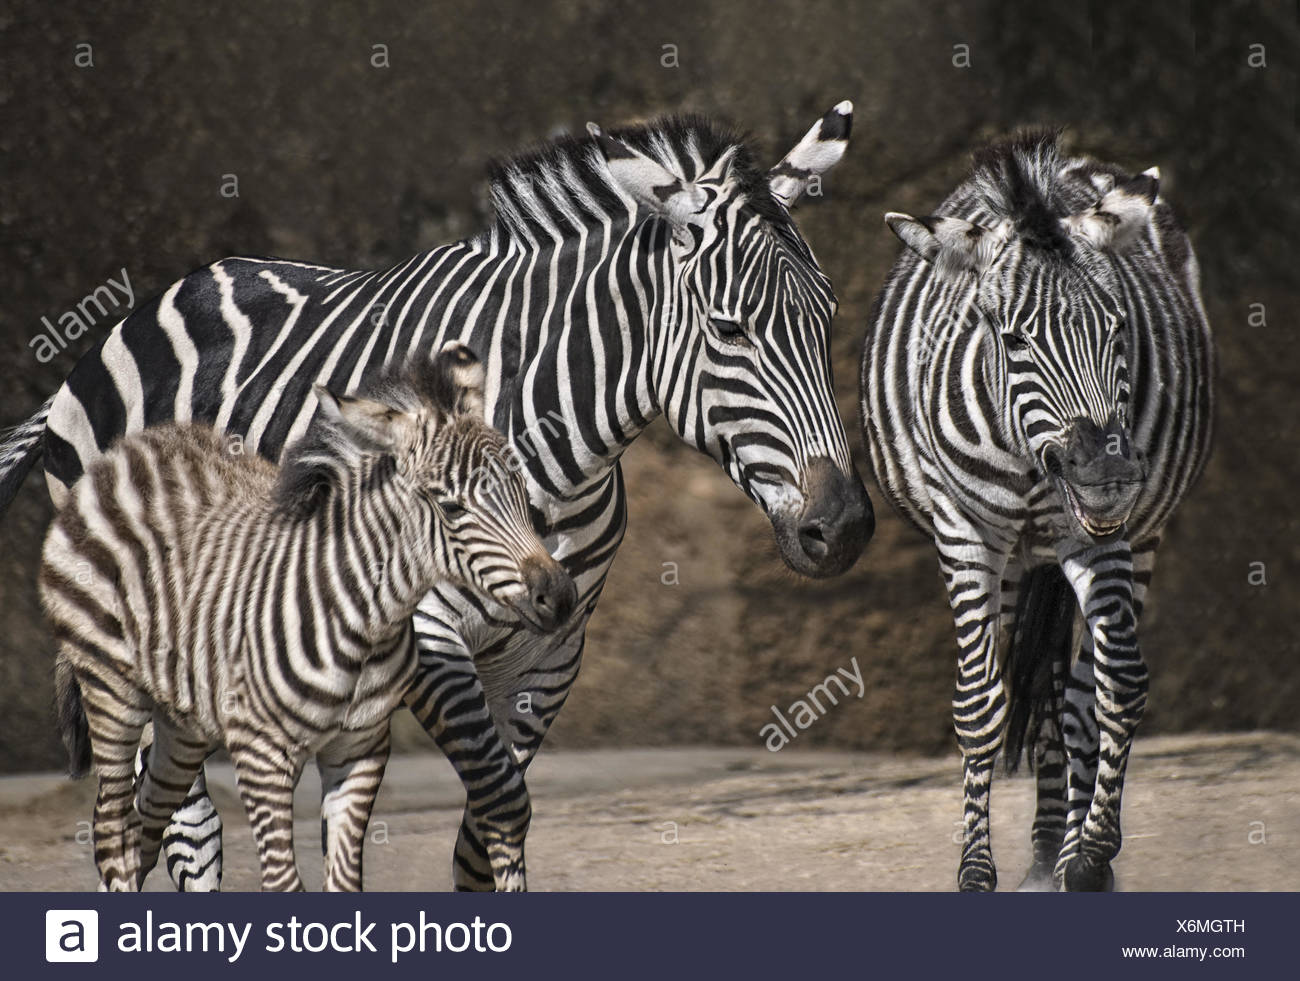 striped family - Stock Image